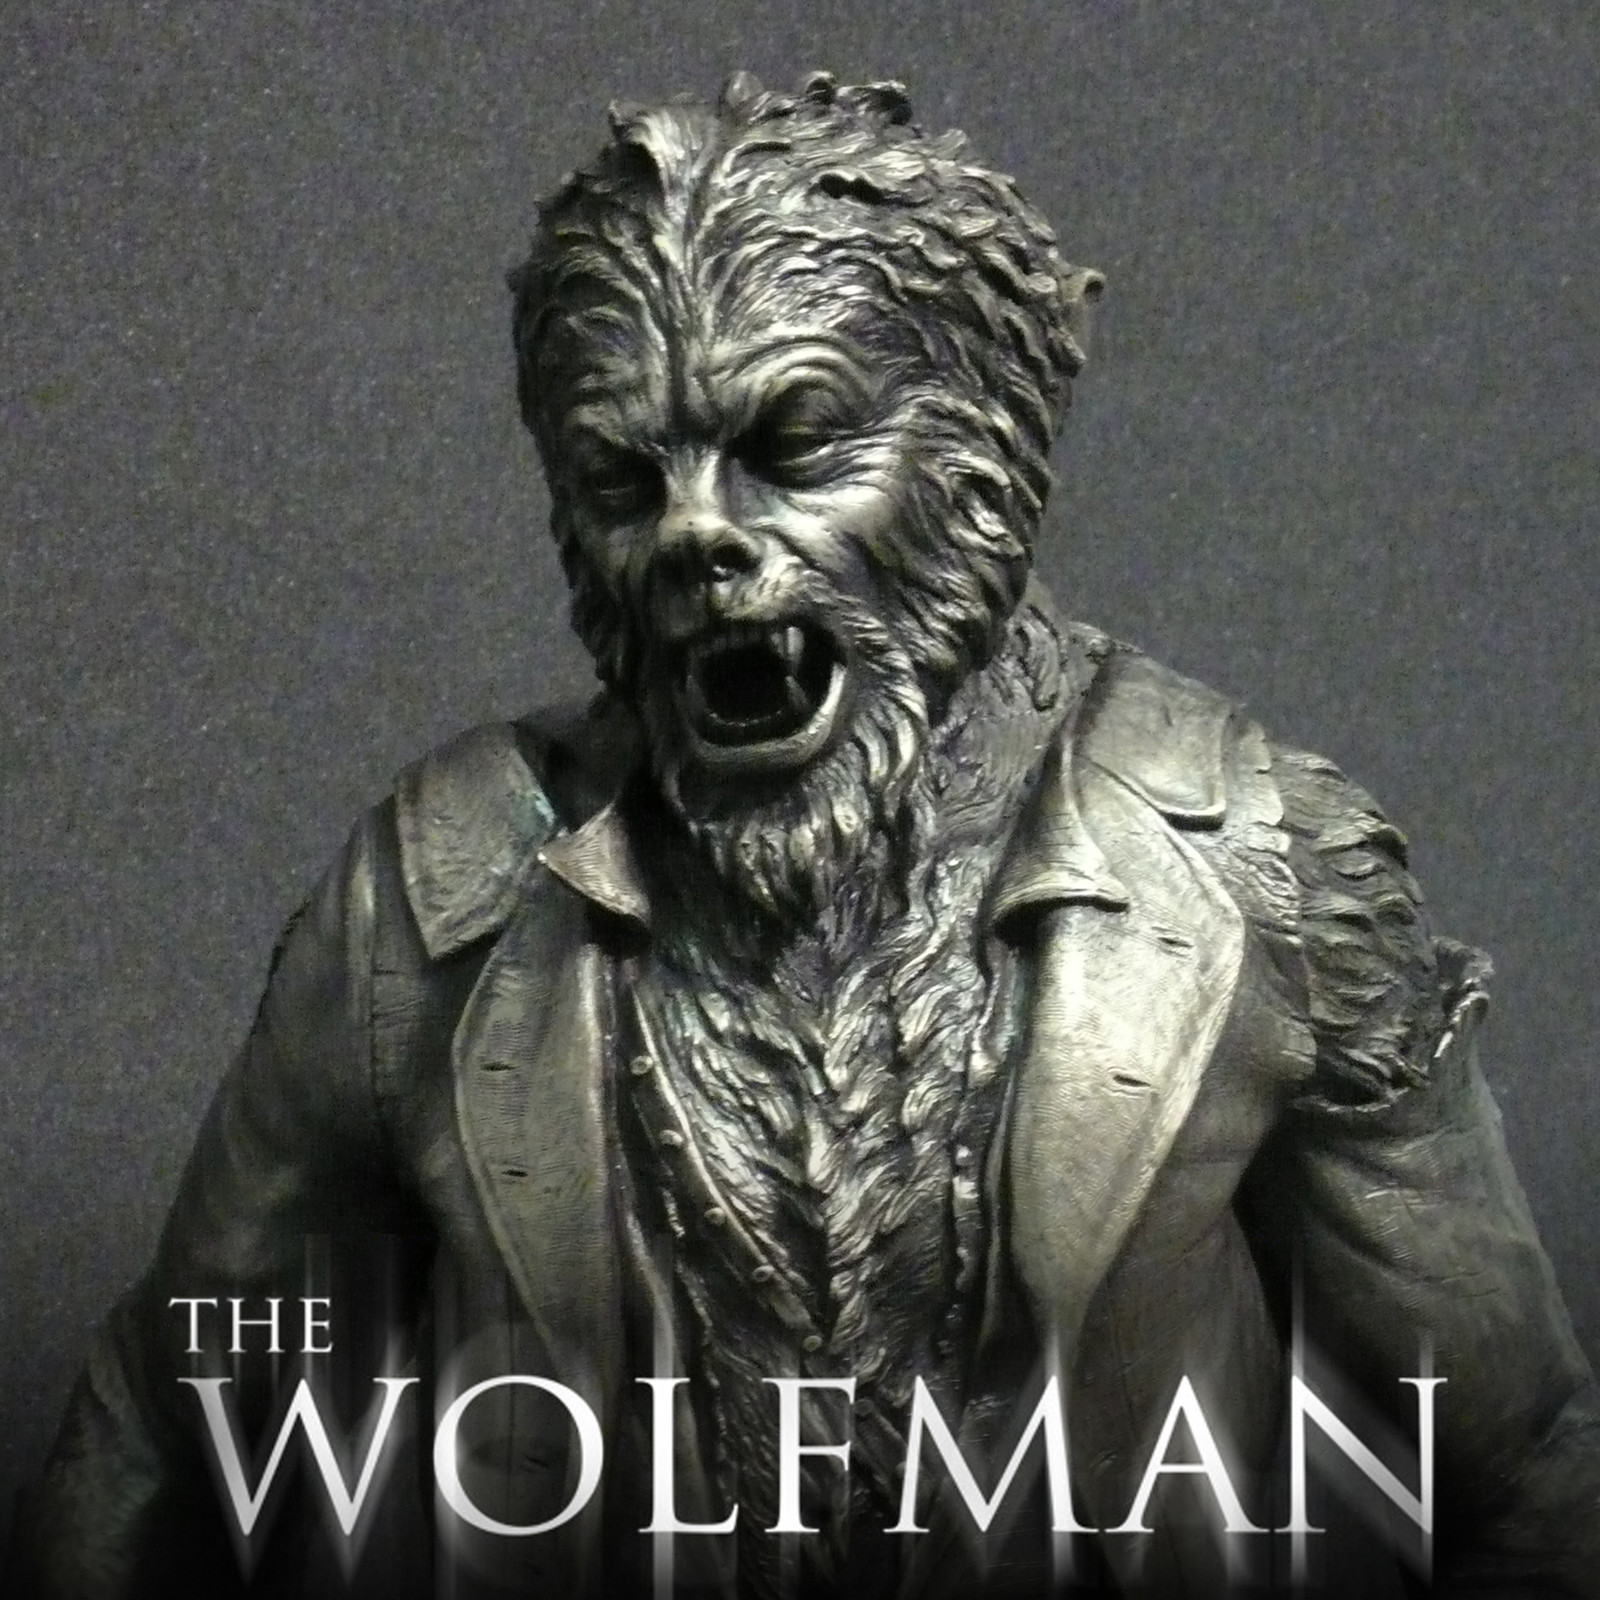 THE WOLFMAM